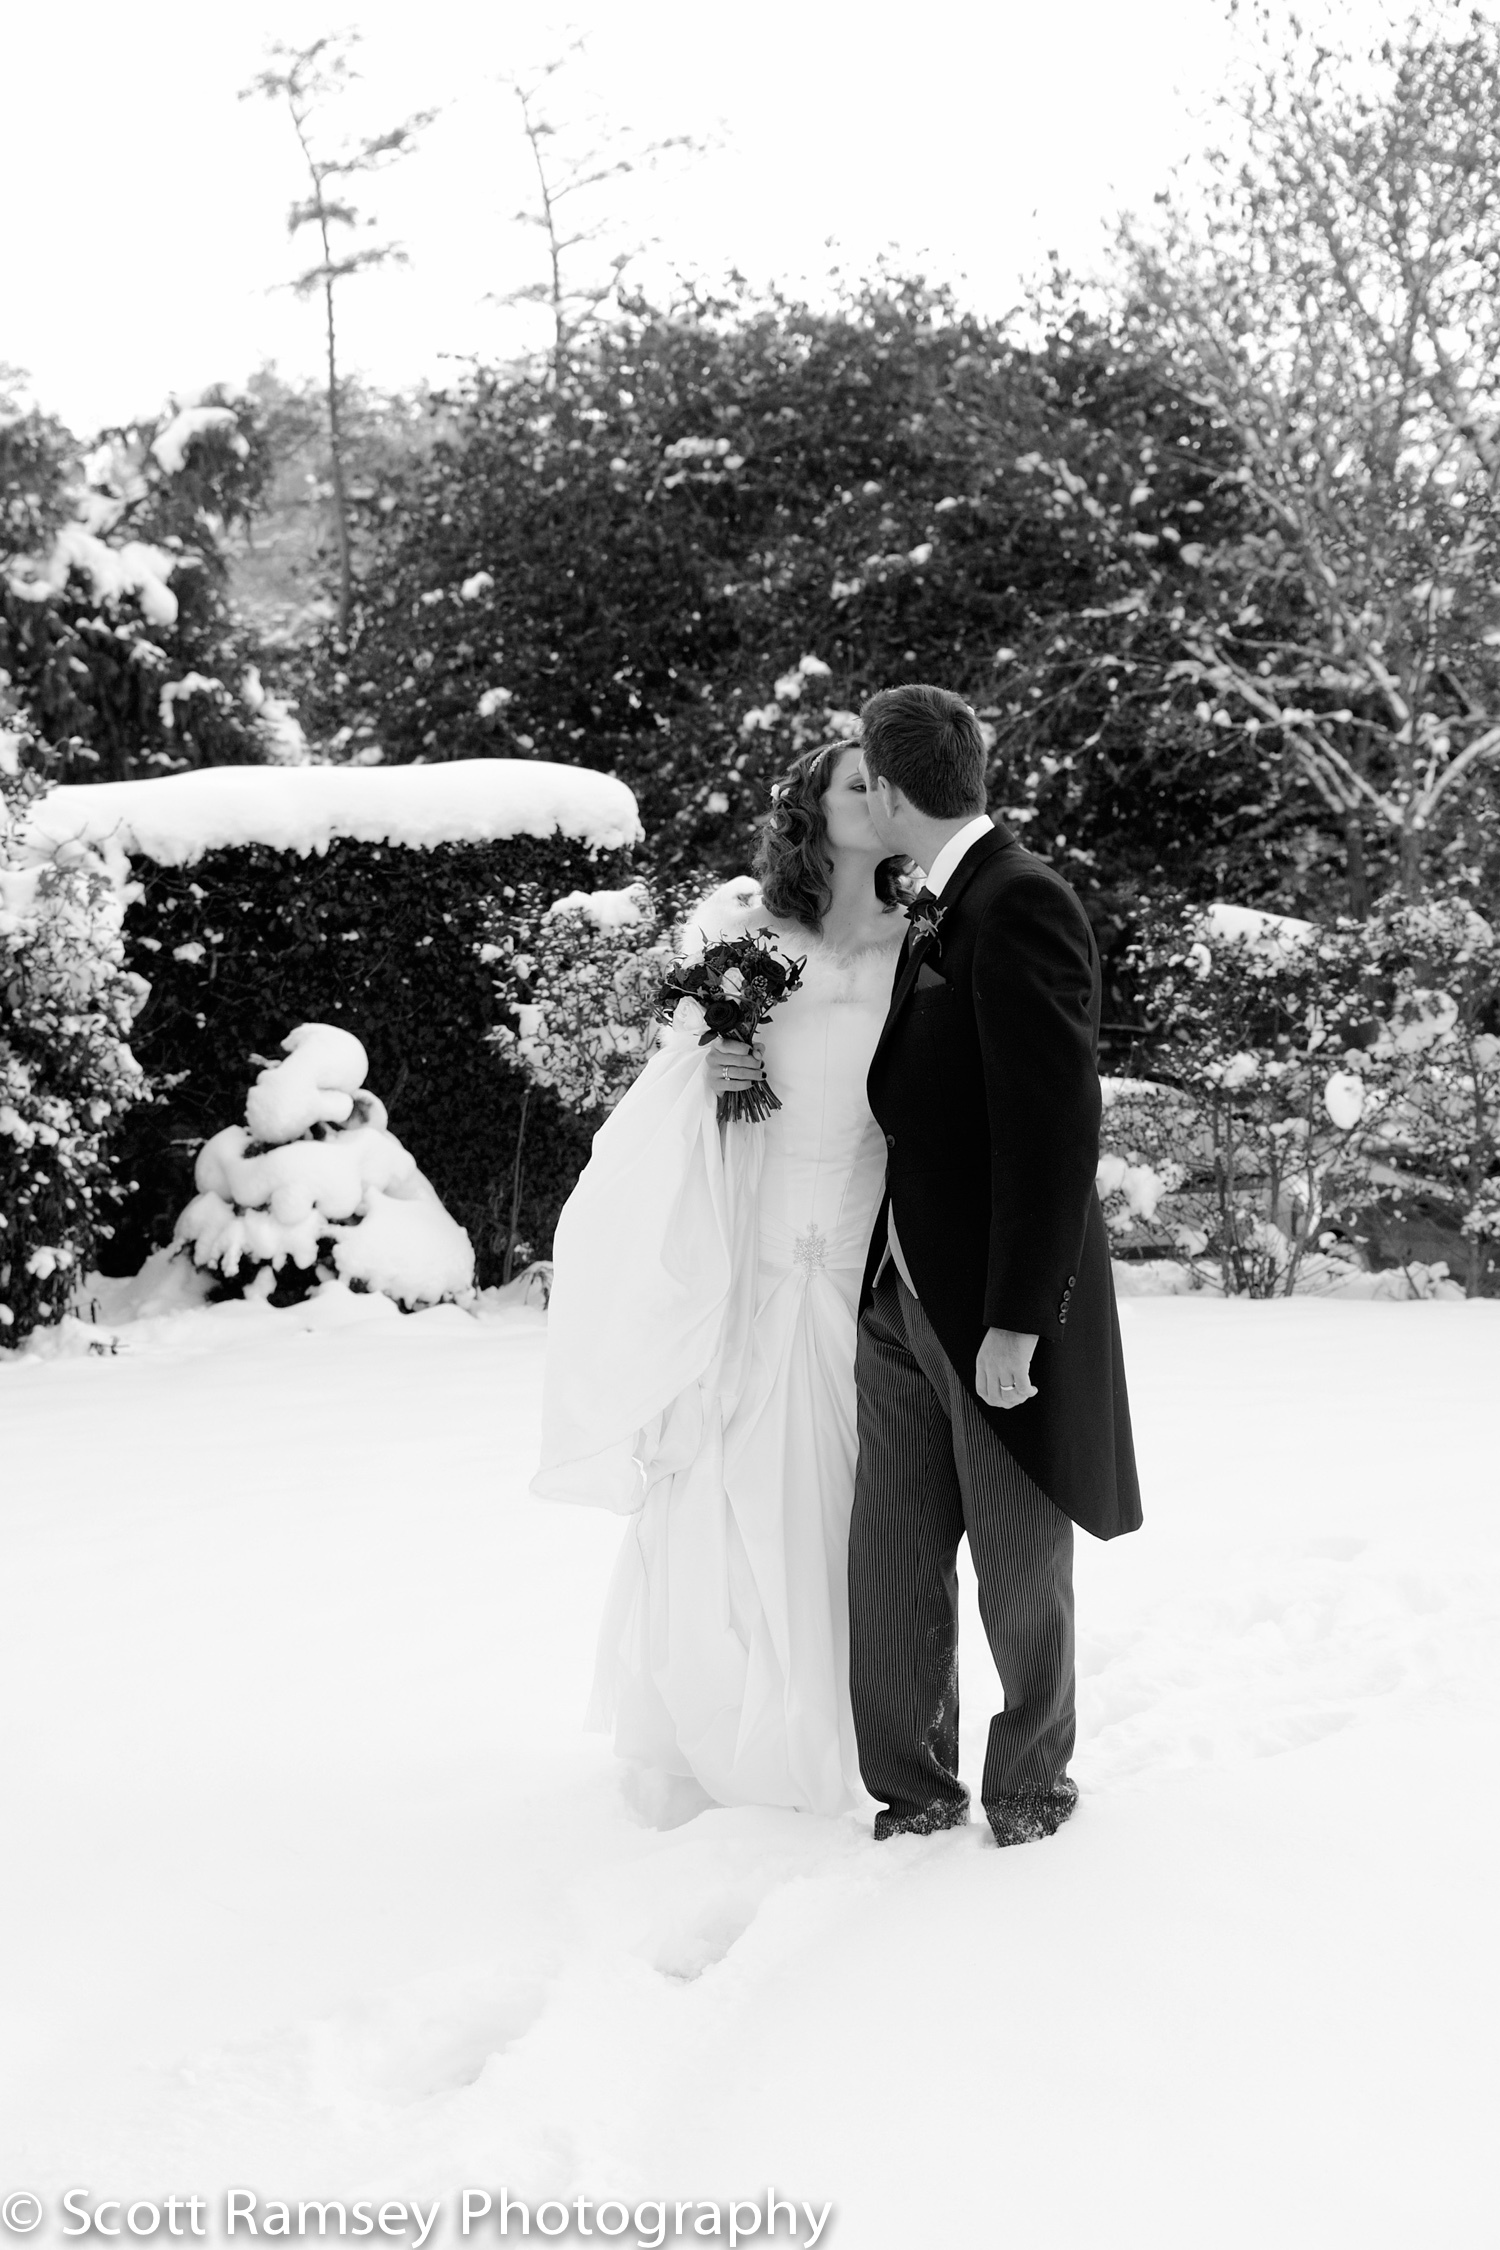 A winter wedding at the Spread Eagle Hotel in Midhurst in West Sussex. In this romantic photograph a Bride and Groom kiss as they walk through deep snow in the grounds of the hotel.